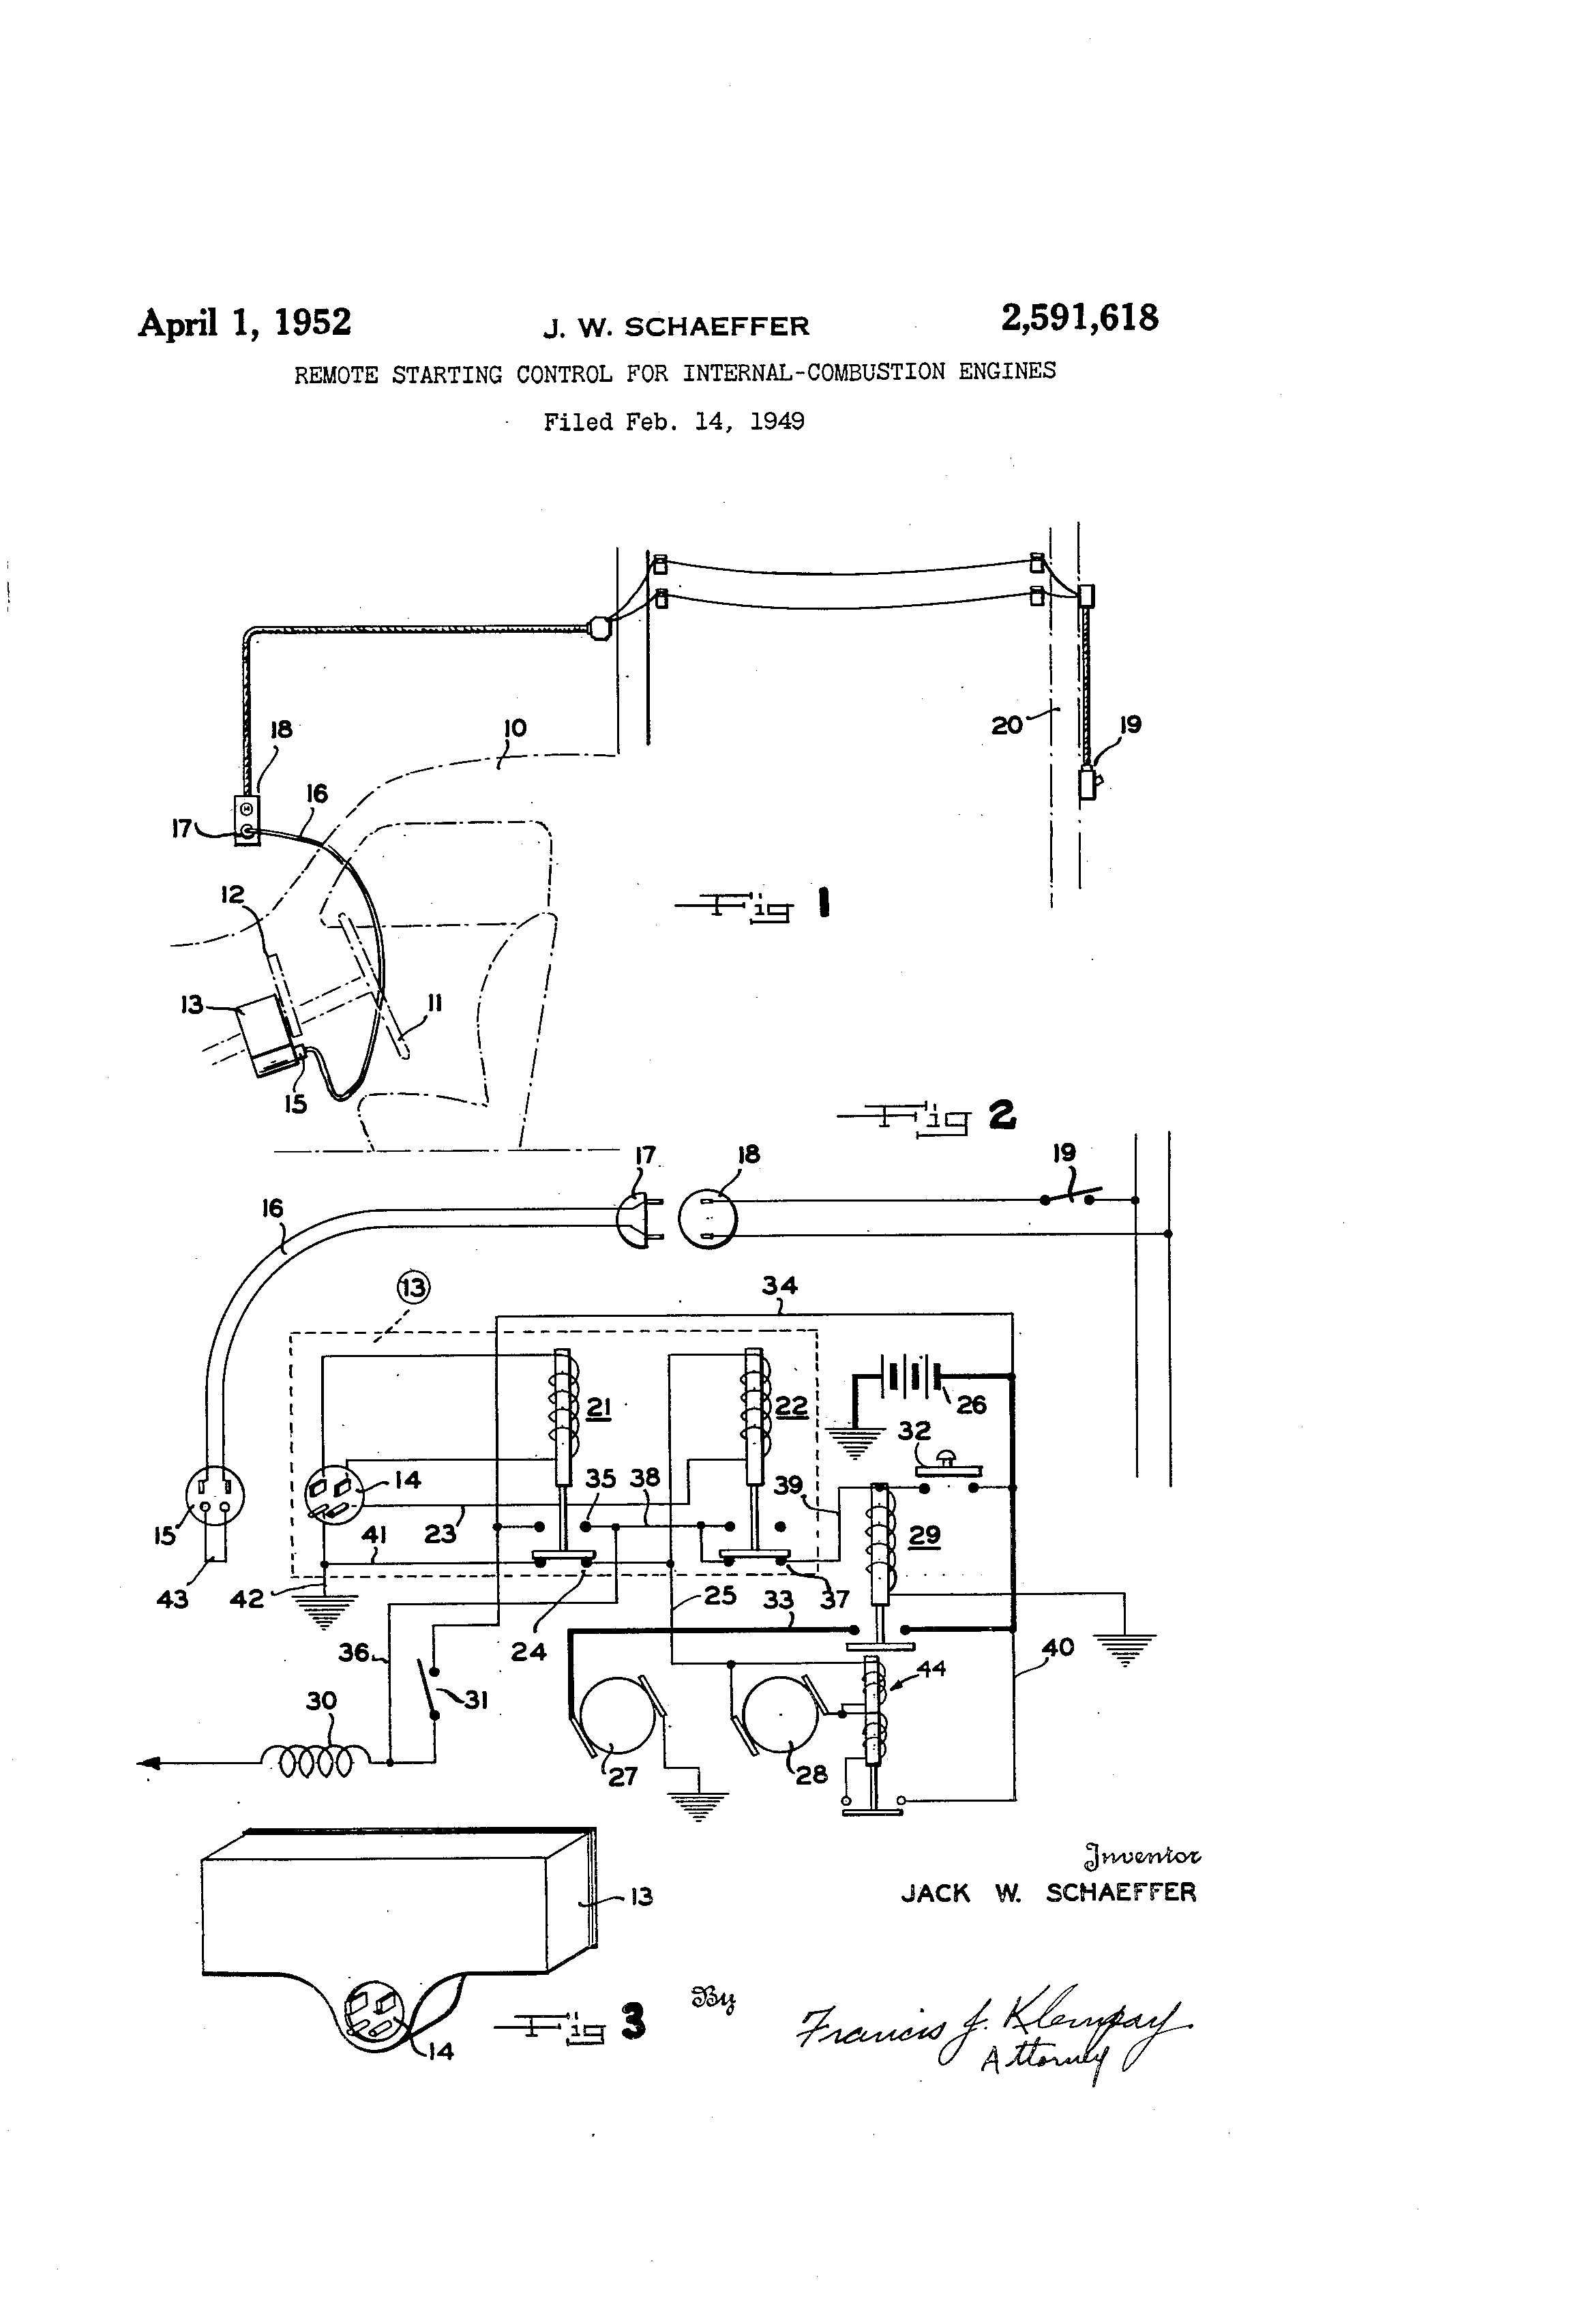 Motors Google Patents On Universal Electric Motor Wiring Diagram Patent Us2591618 Remote Starting Control For Internal Combustion